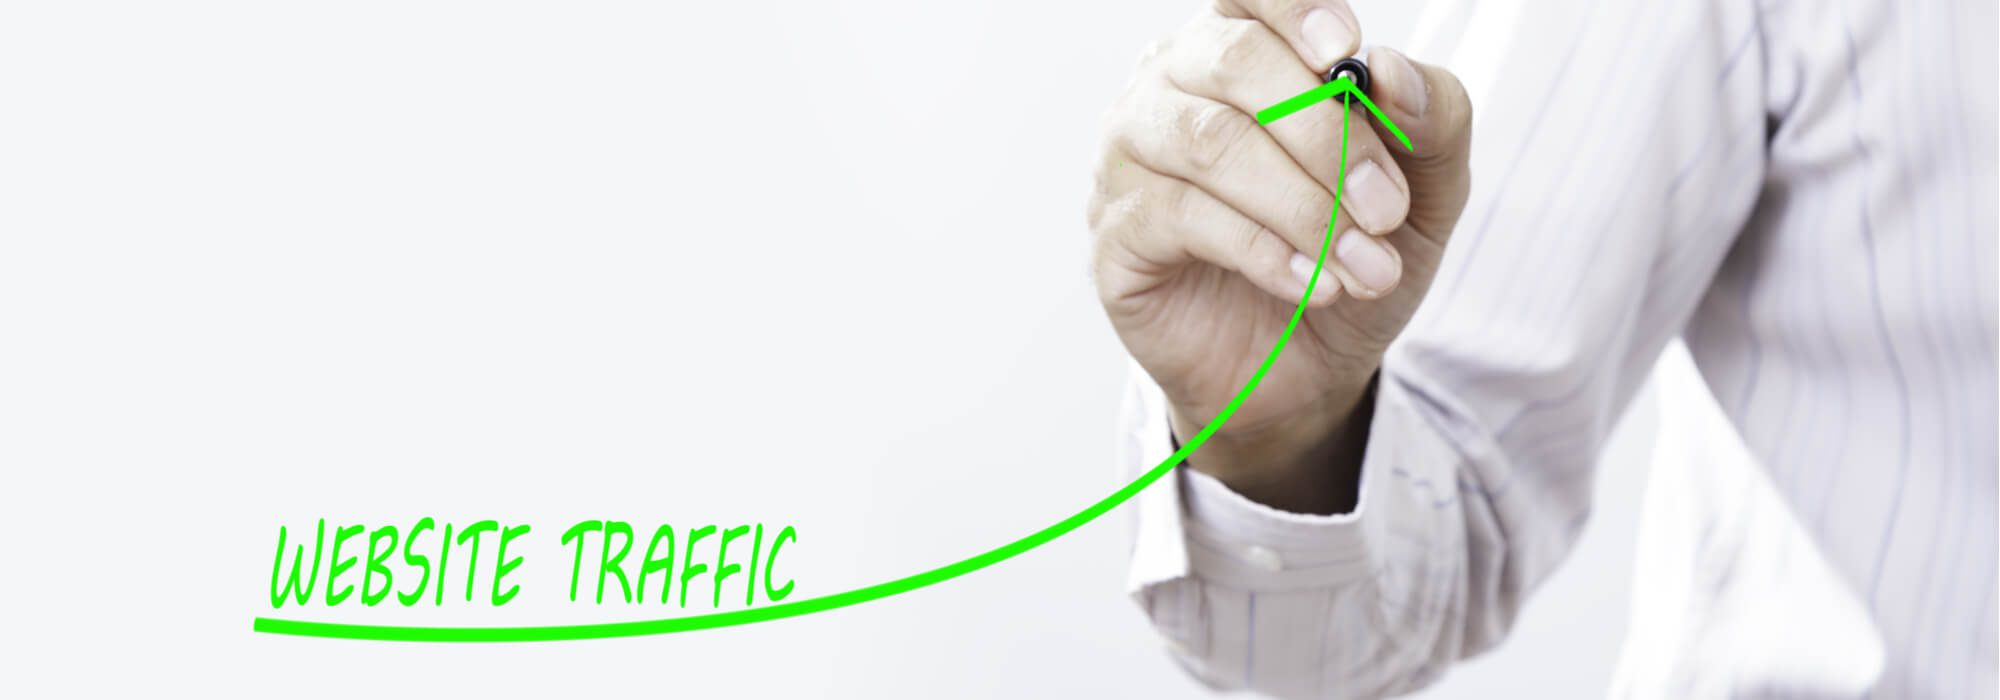 Increased Web Traffic